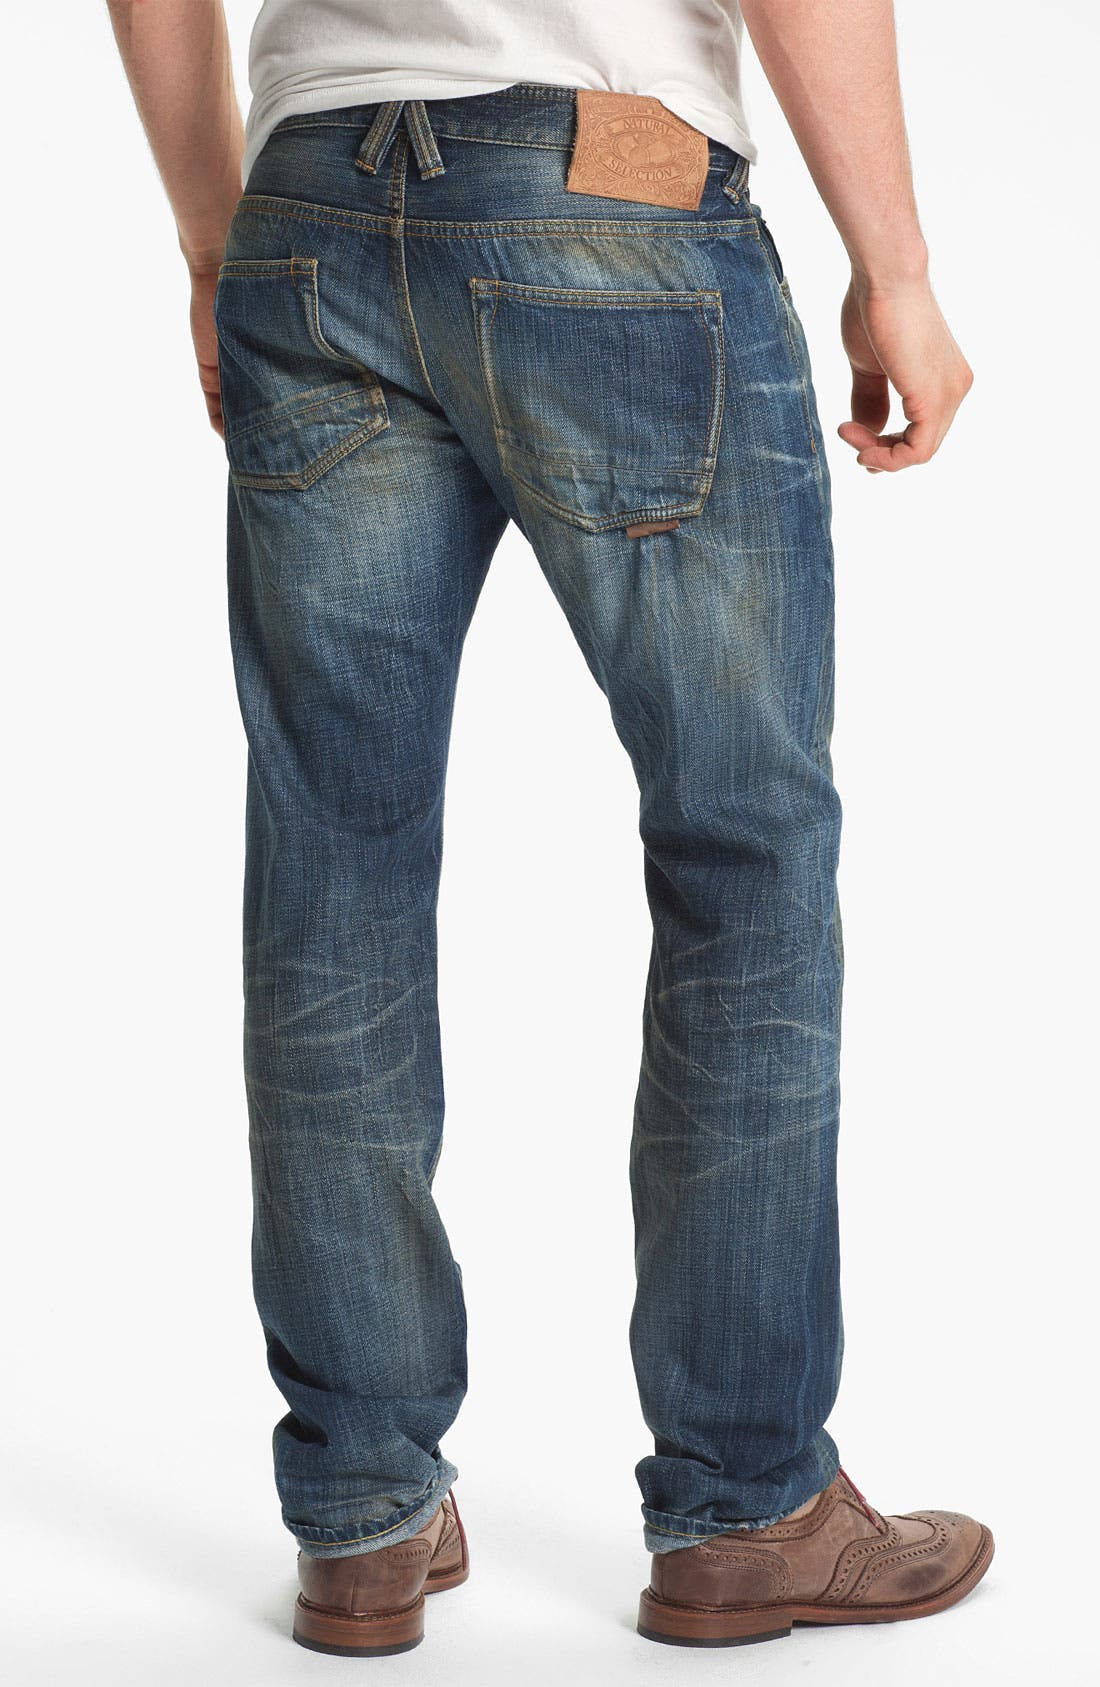 Main Image - Natural Selection Denim 'Broken' Narrow Straight Leg Selvedge Jeans (Dune)